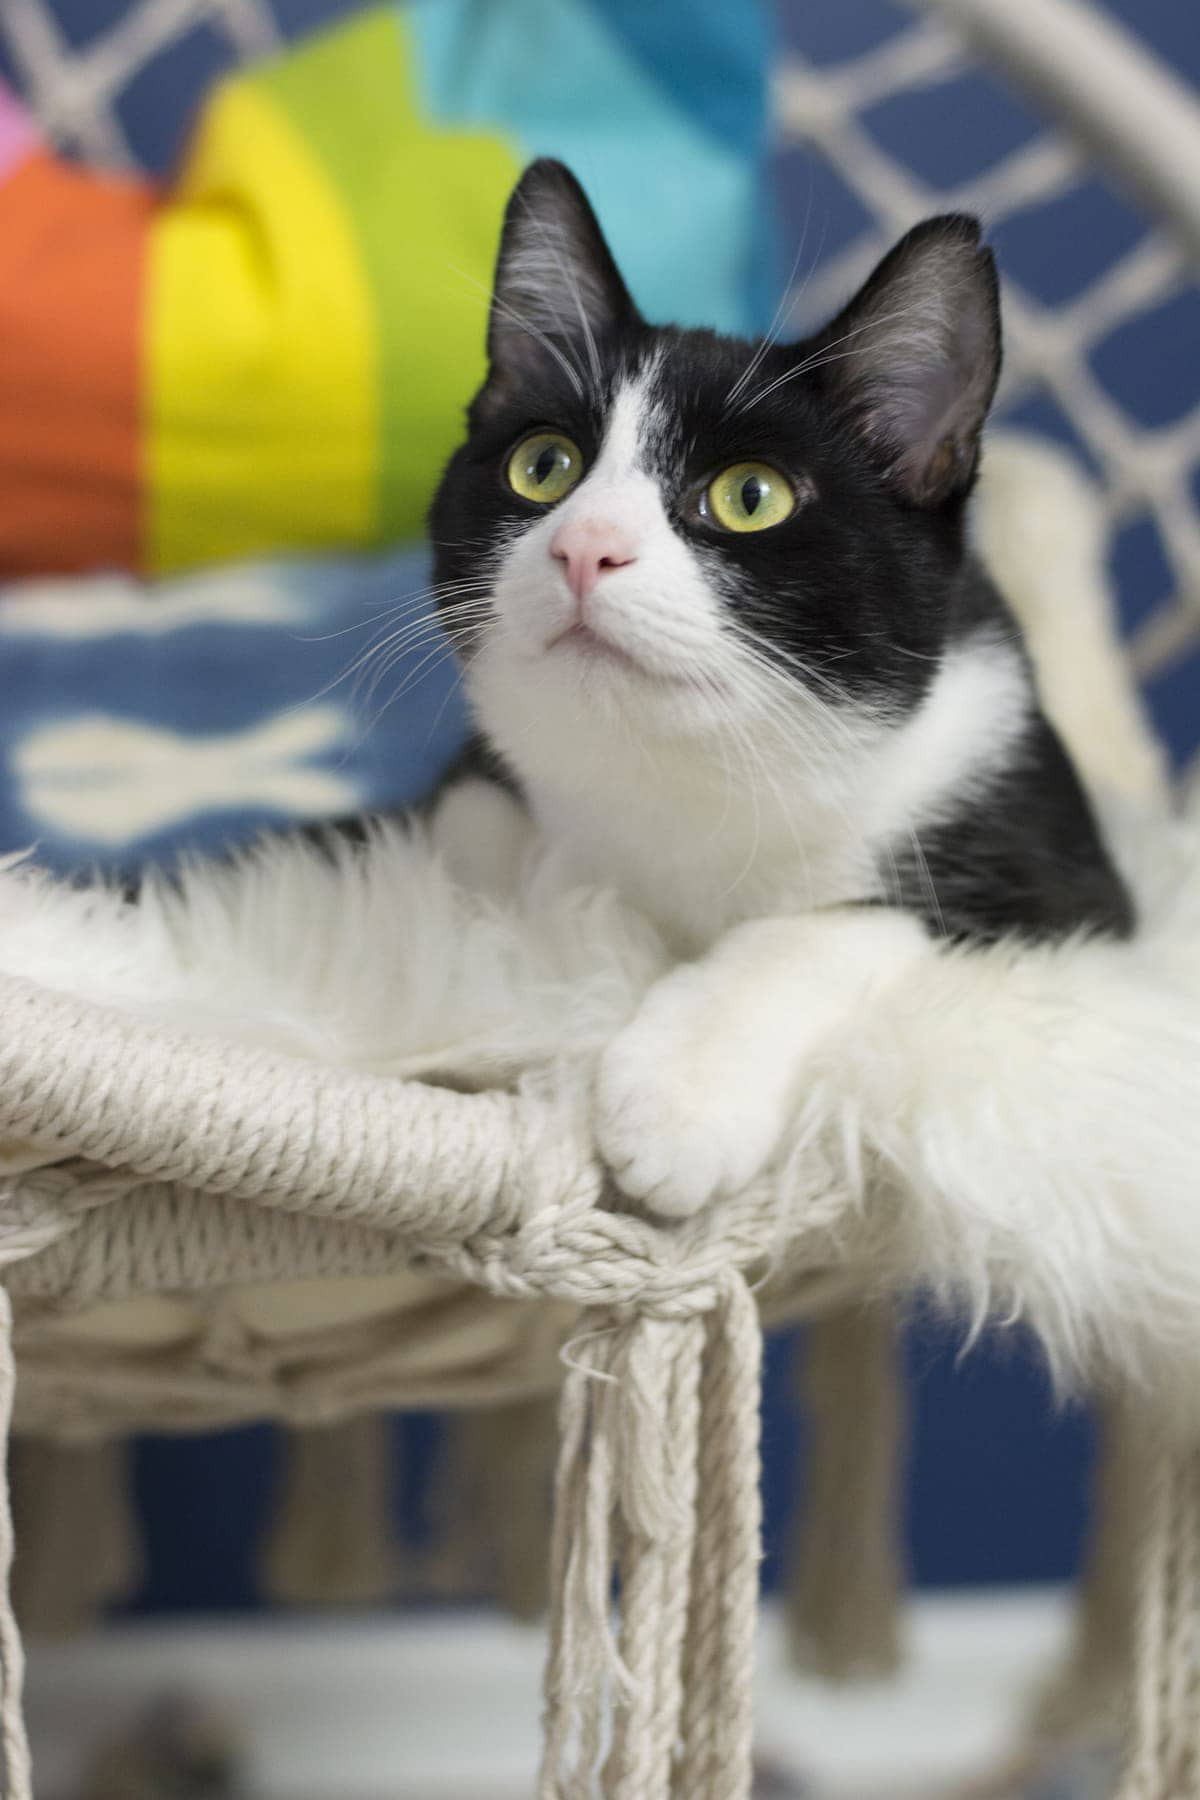 tuxedo cat sitting in macrame hanging chair in a colorful girls bedroom